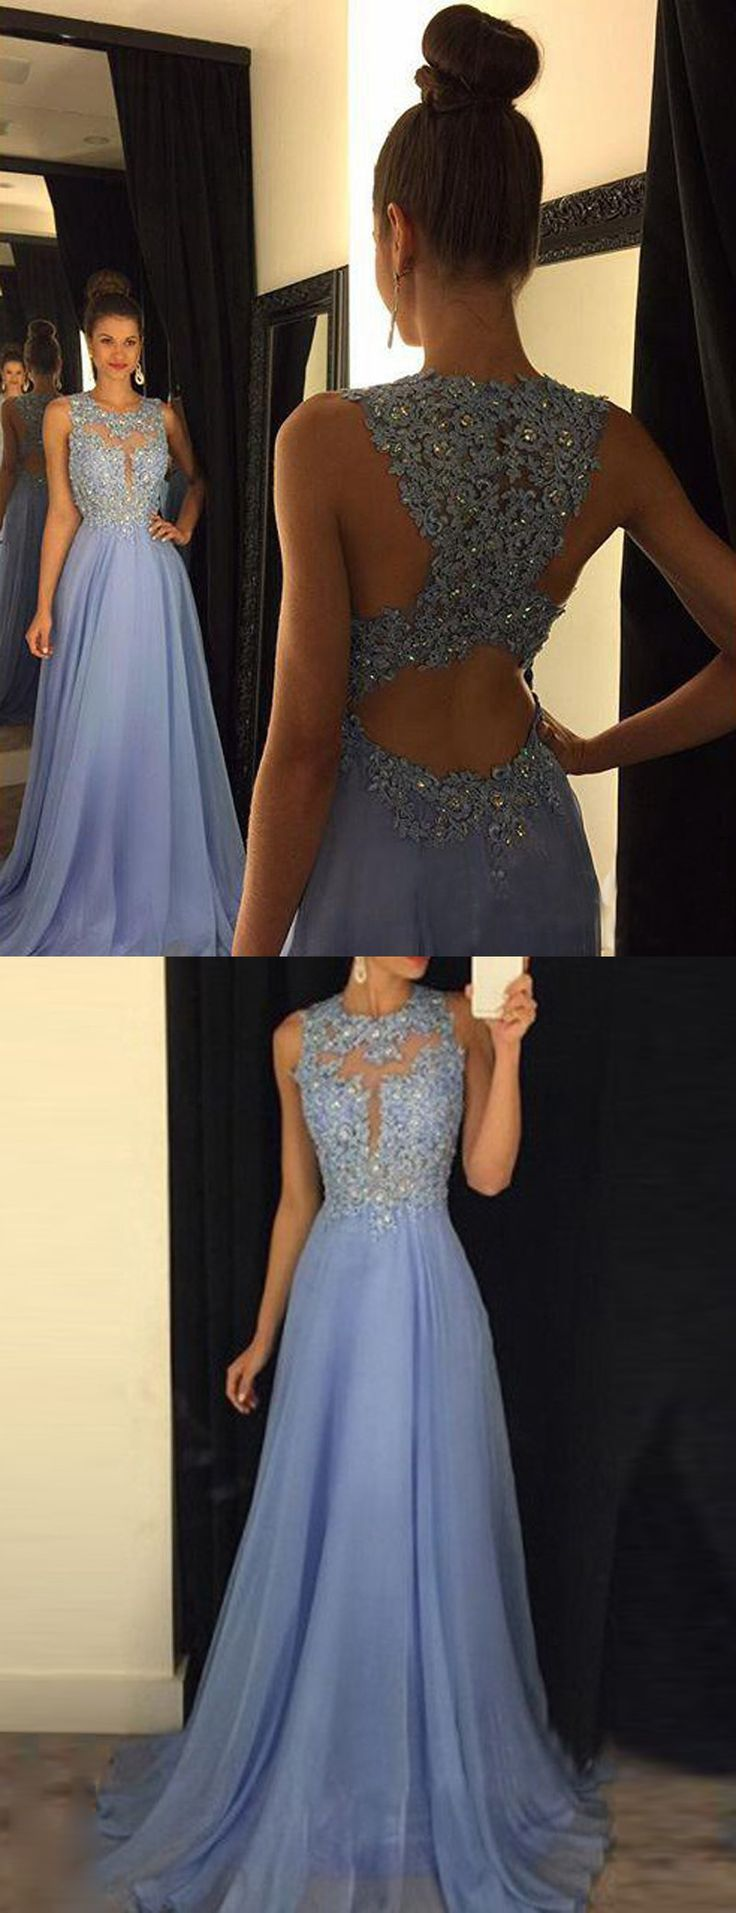 26 best Klamotten images on Pinterest | Long prom dresses, Ball gown ...